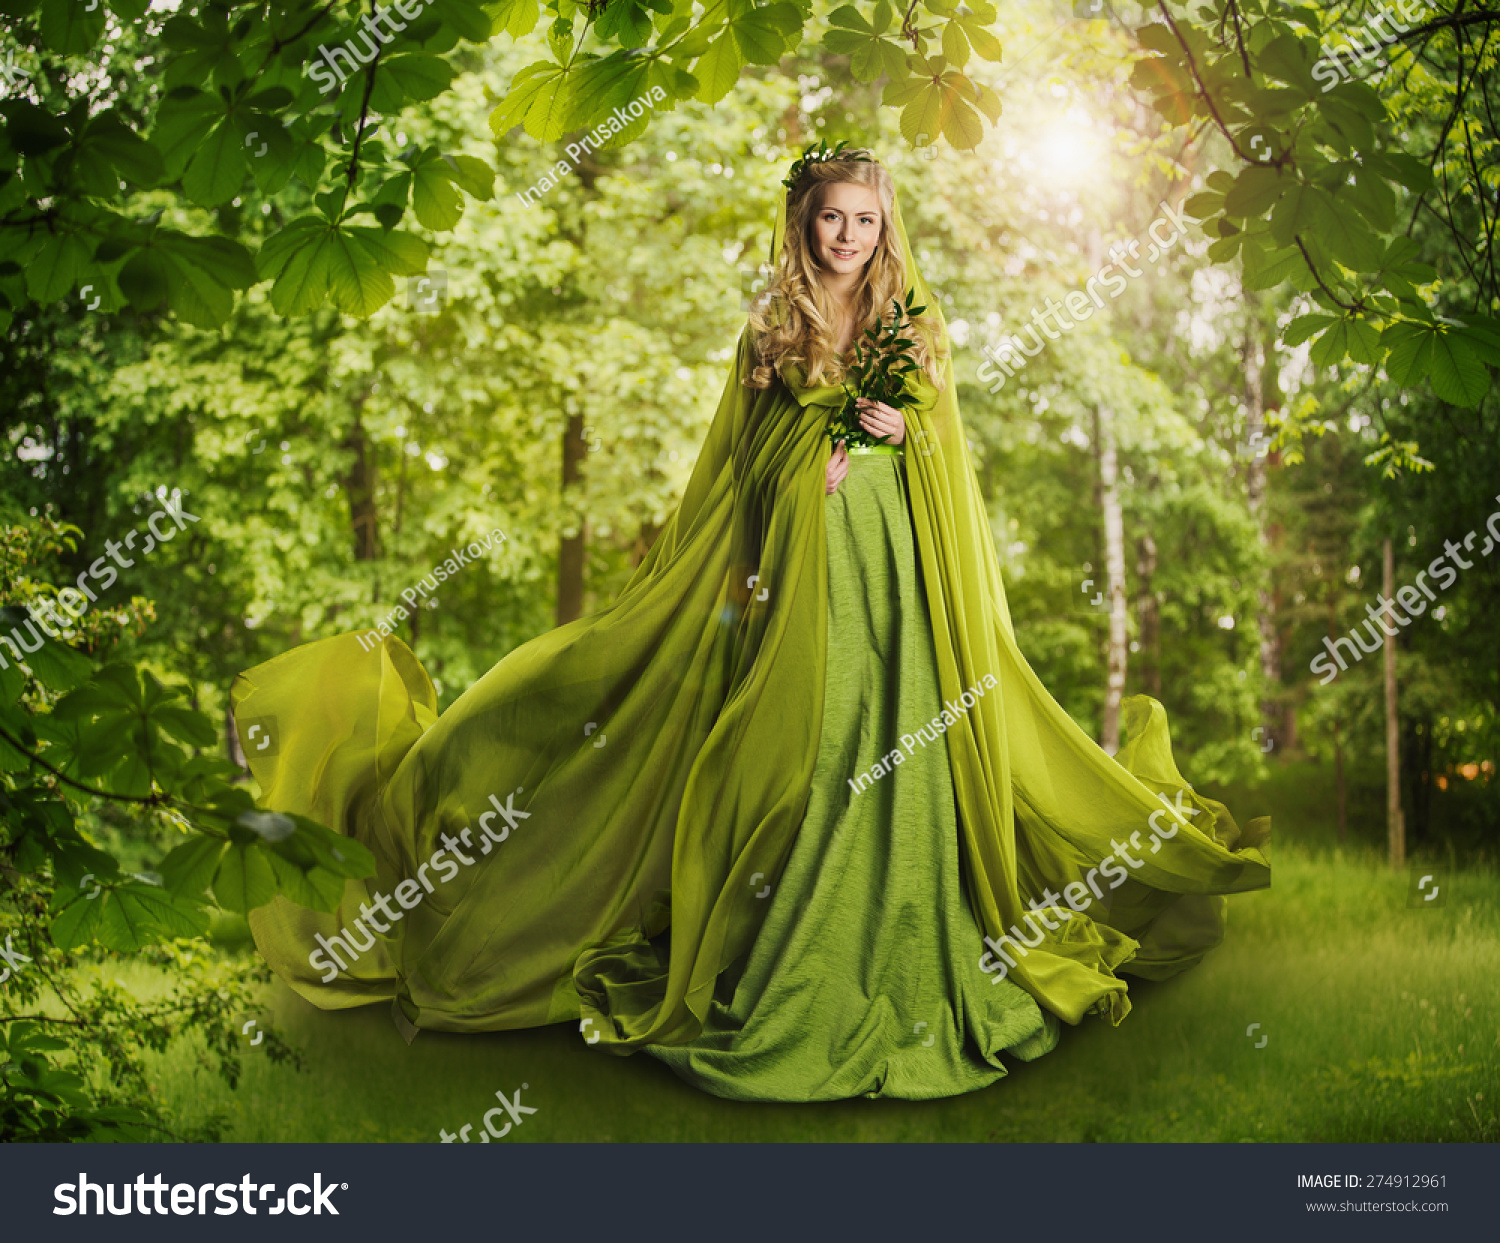 hindu single women in green forest News, email and search are just the beginning discover more every day find your yodel.